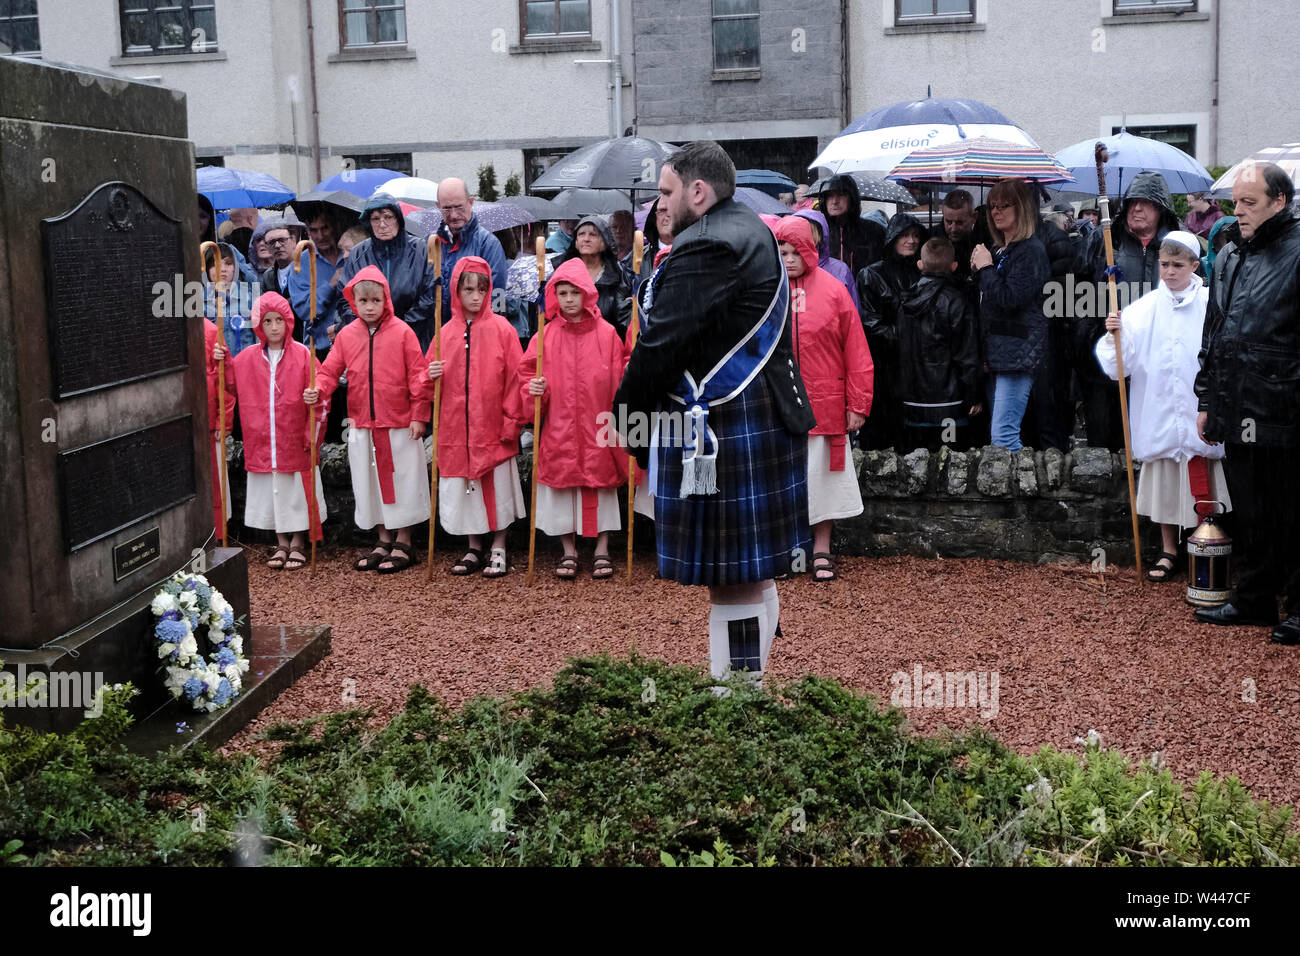 Innerleithen, UK. 19th July, 2019. St Ronans Cleikum Innerleithen Standard Bearer 2019, Ronan D Caine lays a wreath at the war memorial at the Cleikum Ceremonies, Memorial Hall, Innerleithen. as part of St RonanÕs Games Week, Friday 19 July 2019 . Instituted in 1827, The Games are the oldest organised sports meeting in Scotland and are now part of a week long festival that incorporates many events for every age group. Central to the festivities are the Cleikum Ceremonies when the town's association with its Patron Saint, St. Ronan, is celebrated ( Credit: Rob Gray/Alamy Live News - Stock Image